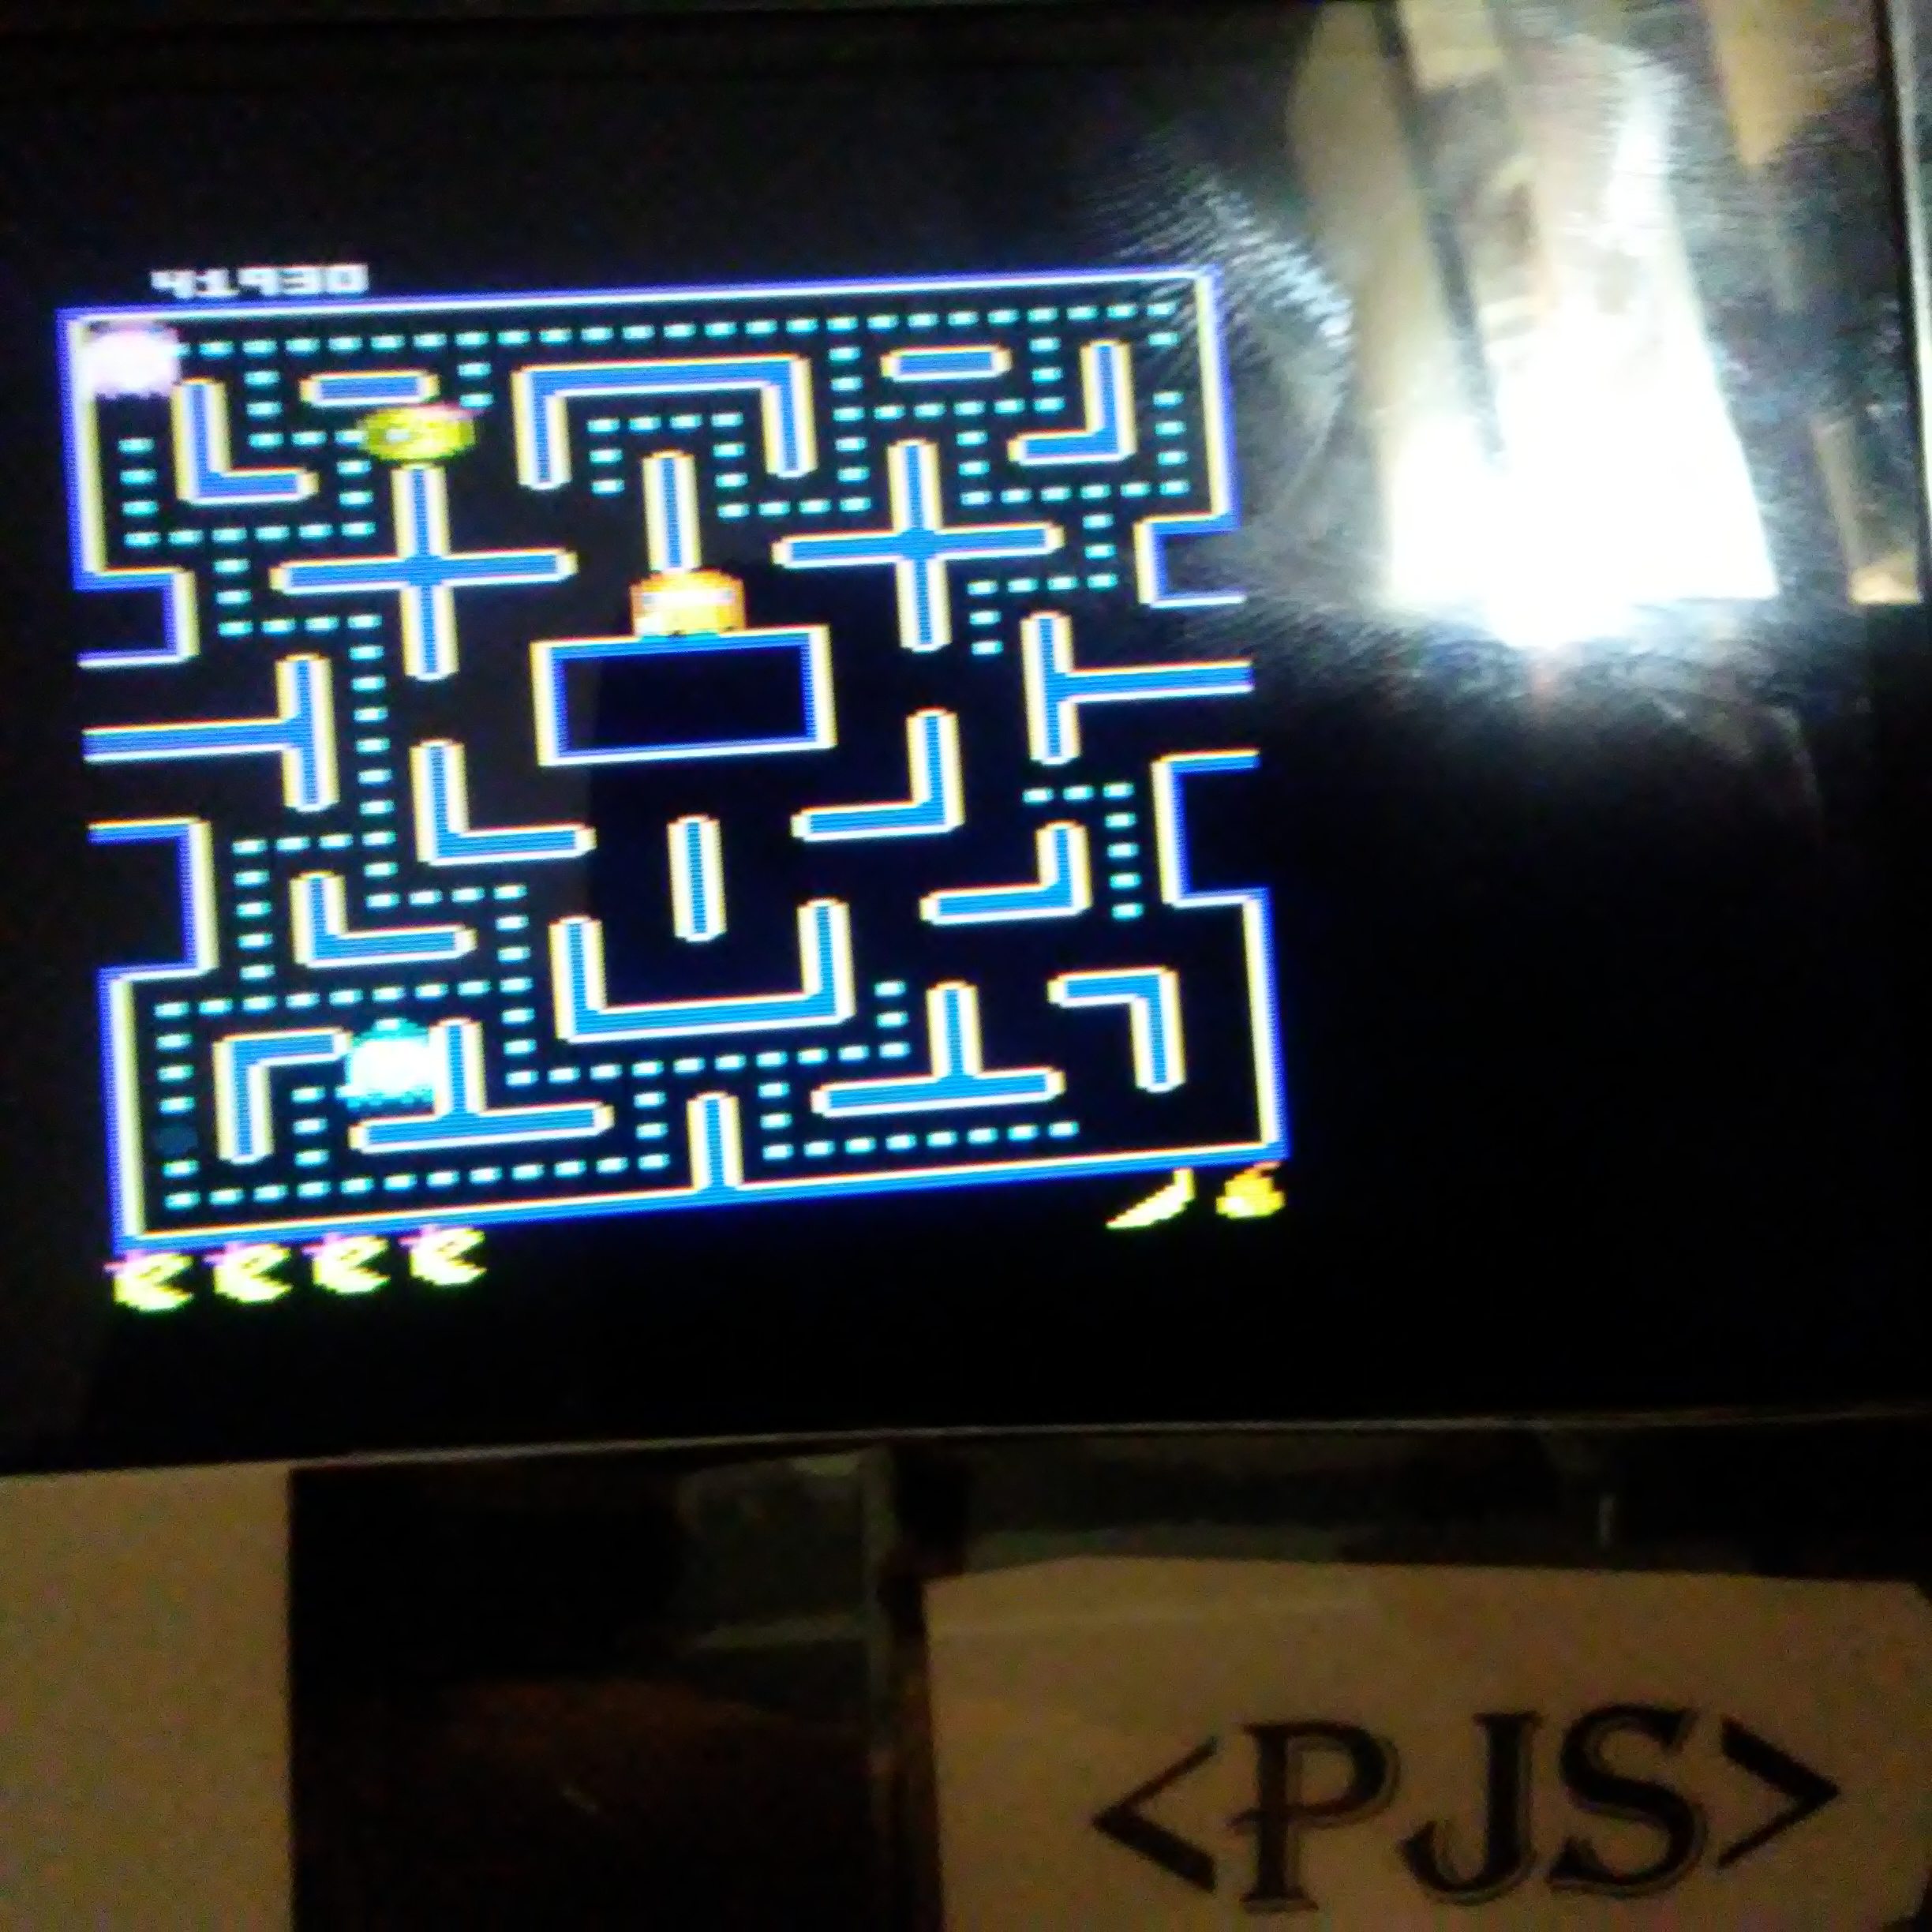 Pjsteele: Ms. Pac-Man: Pear Start (Atari 7800 Emulated) 41,930 points on 2018-06-25 19:33:38